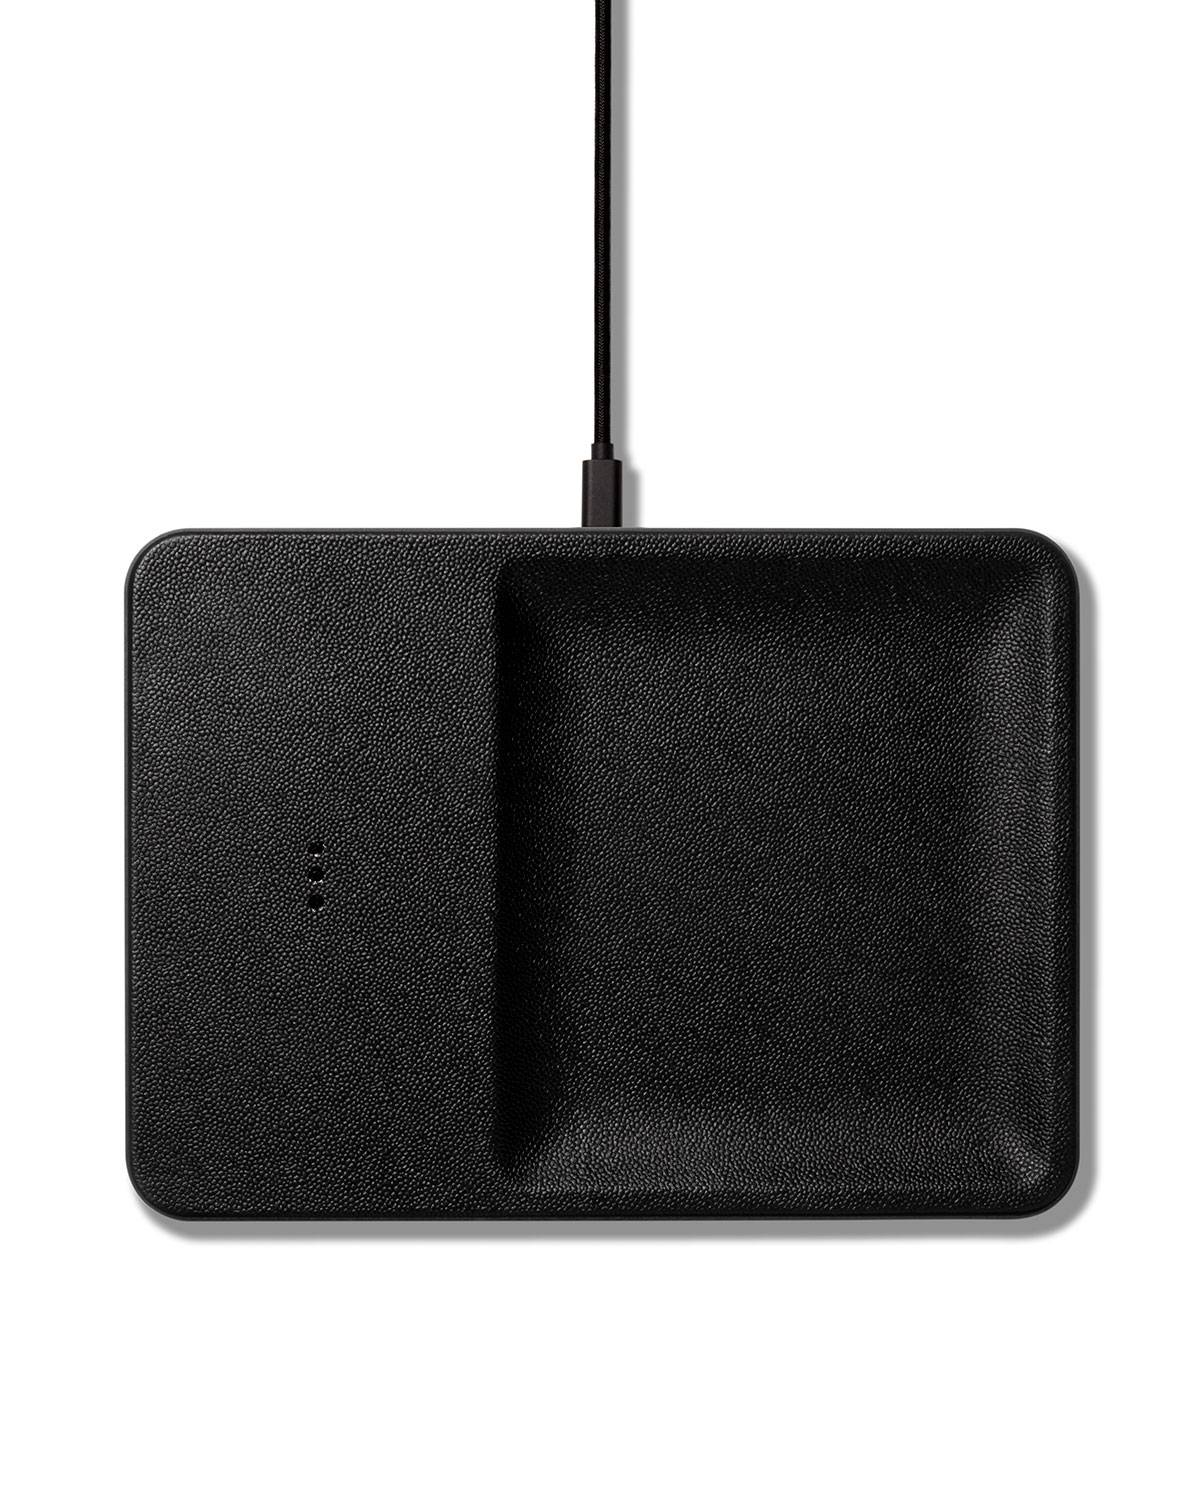 Courant CATCH:3 Single Device Wireless Charging Station w/ Accessory Organizer, Black